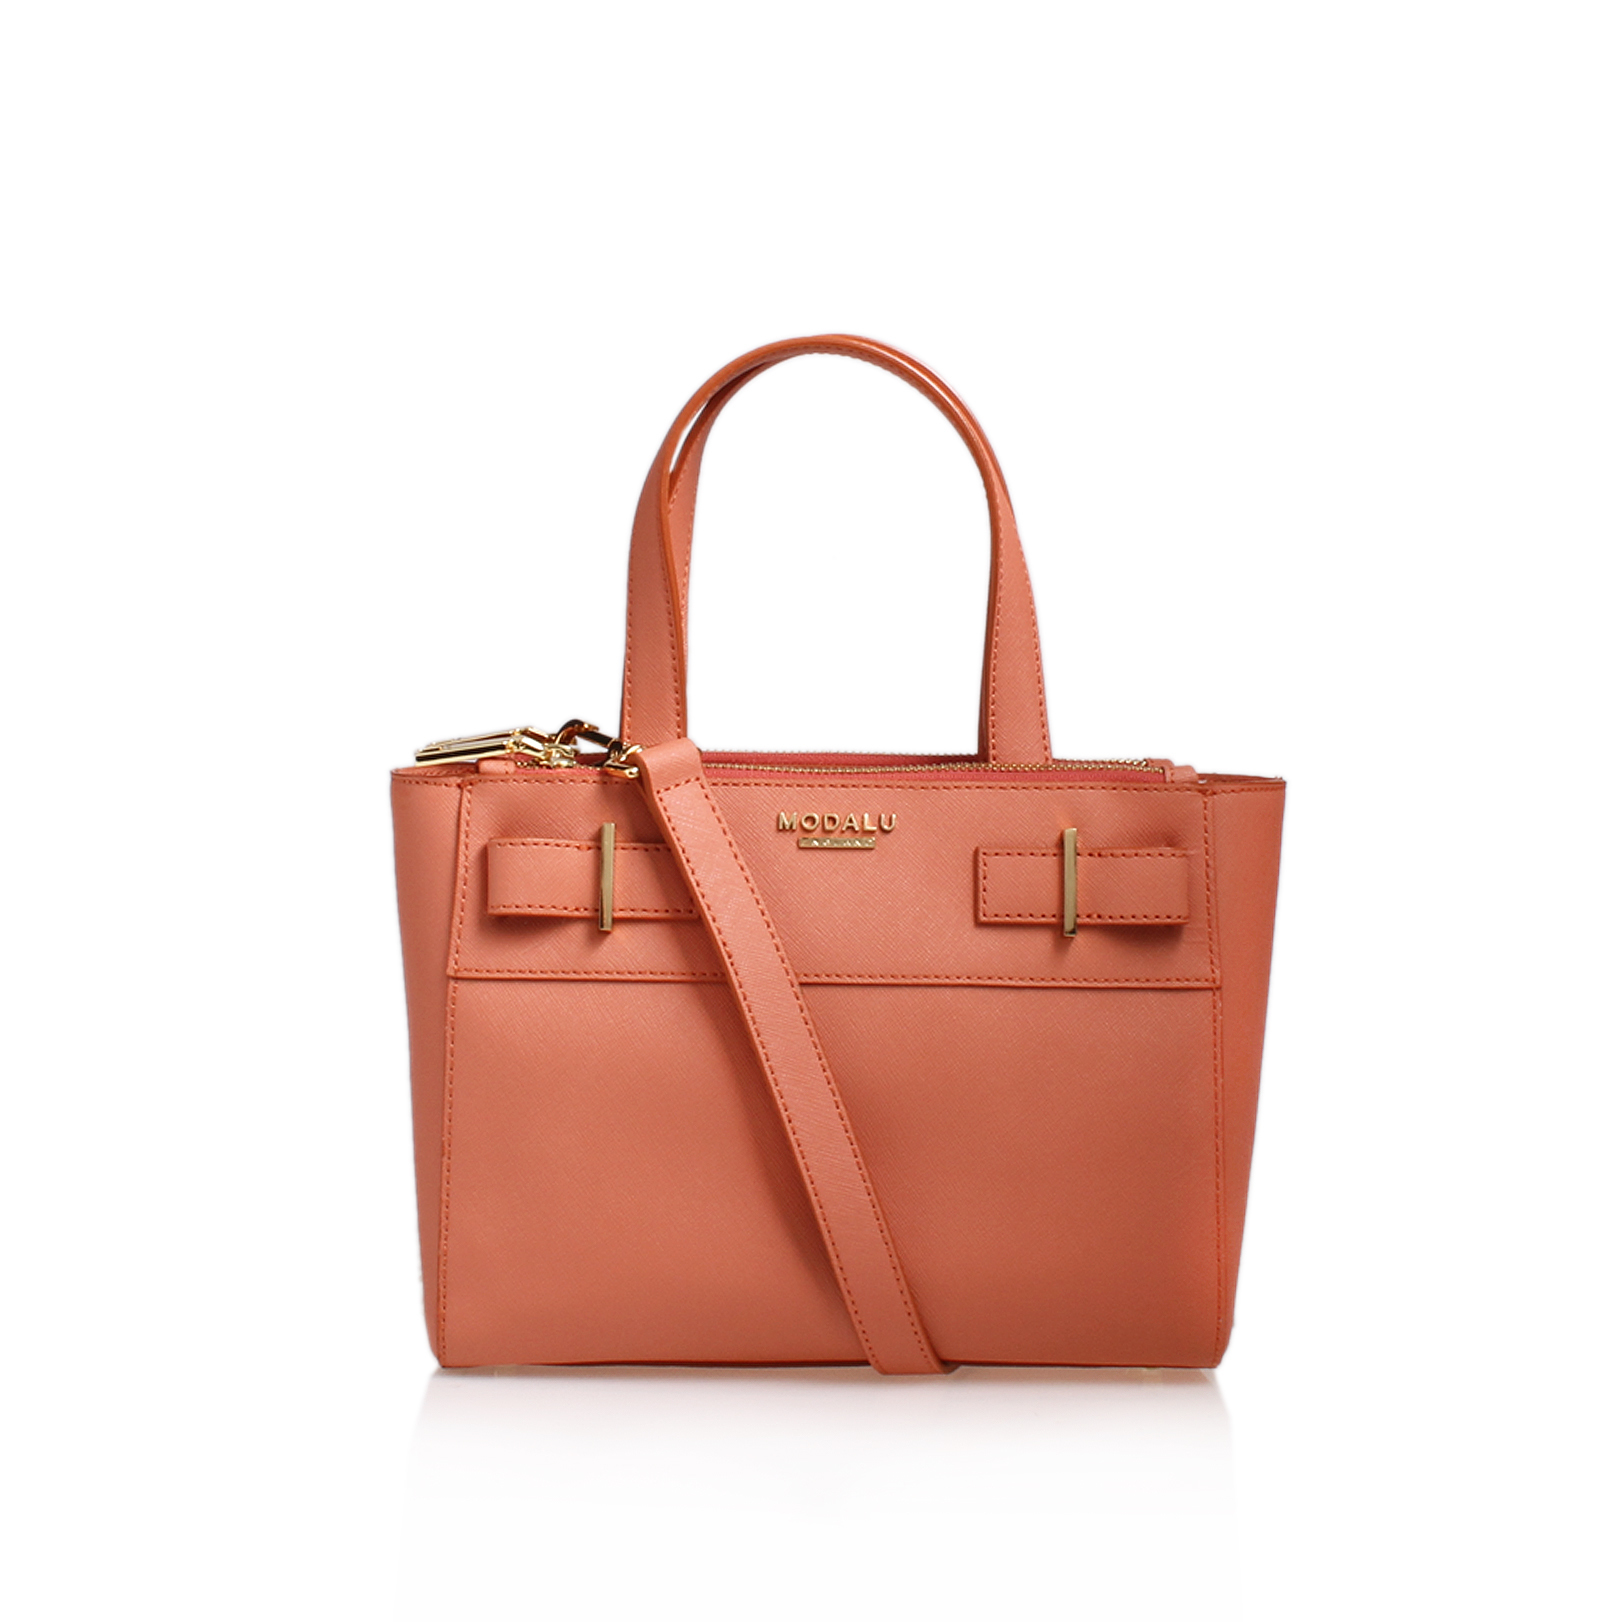 BELLE LEATHER BAG